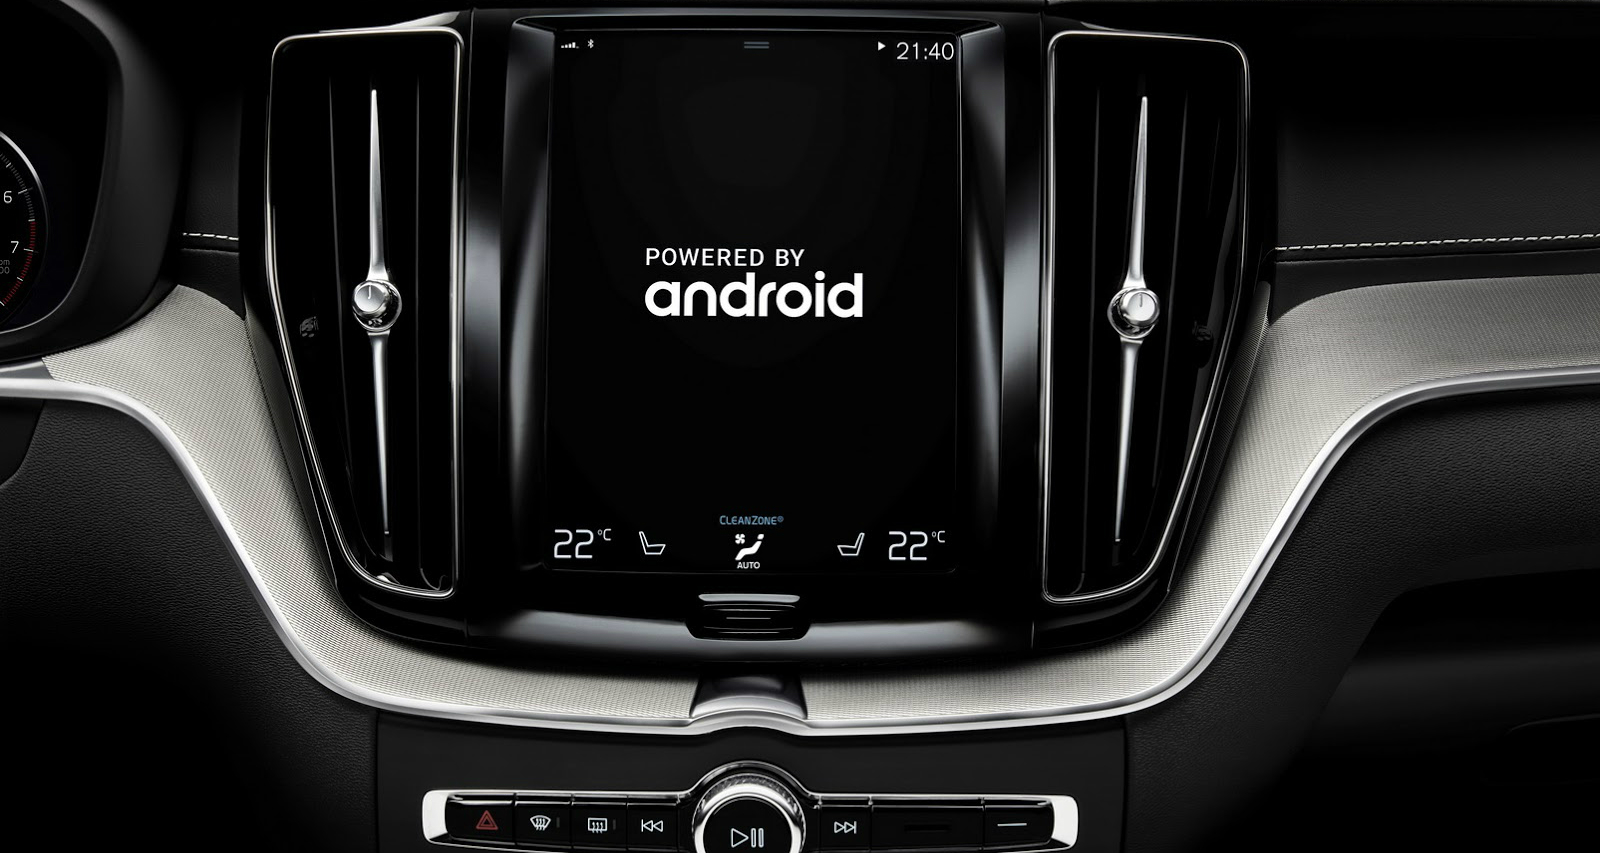 Volvo Google Android Partnership For Next-Gen Connected Cars